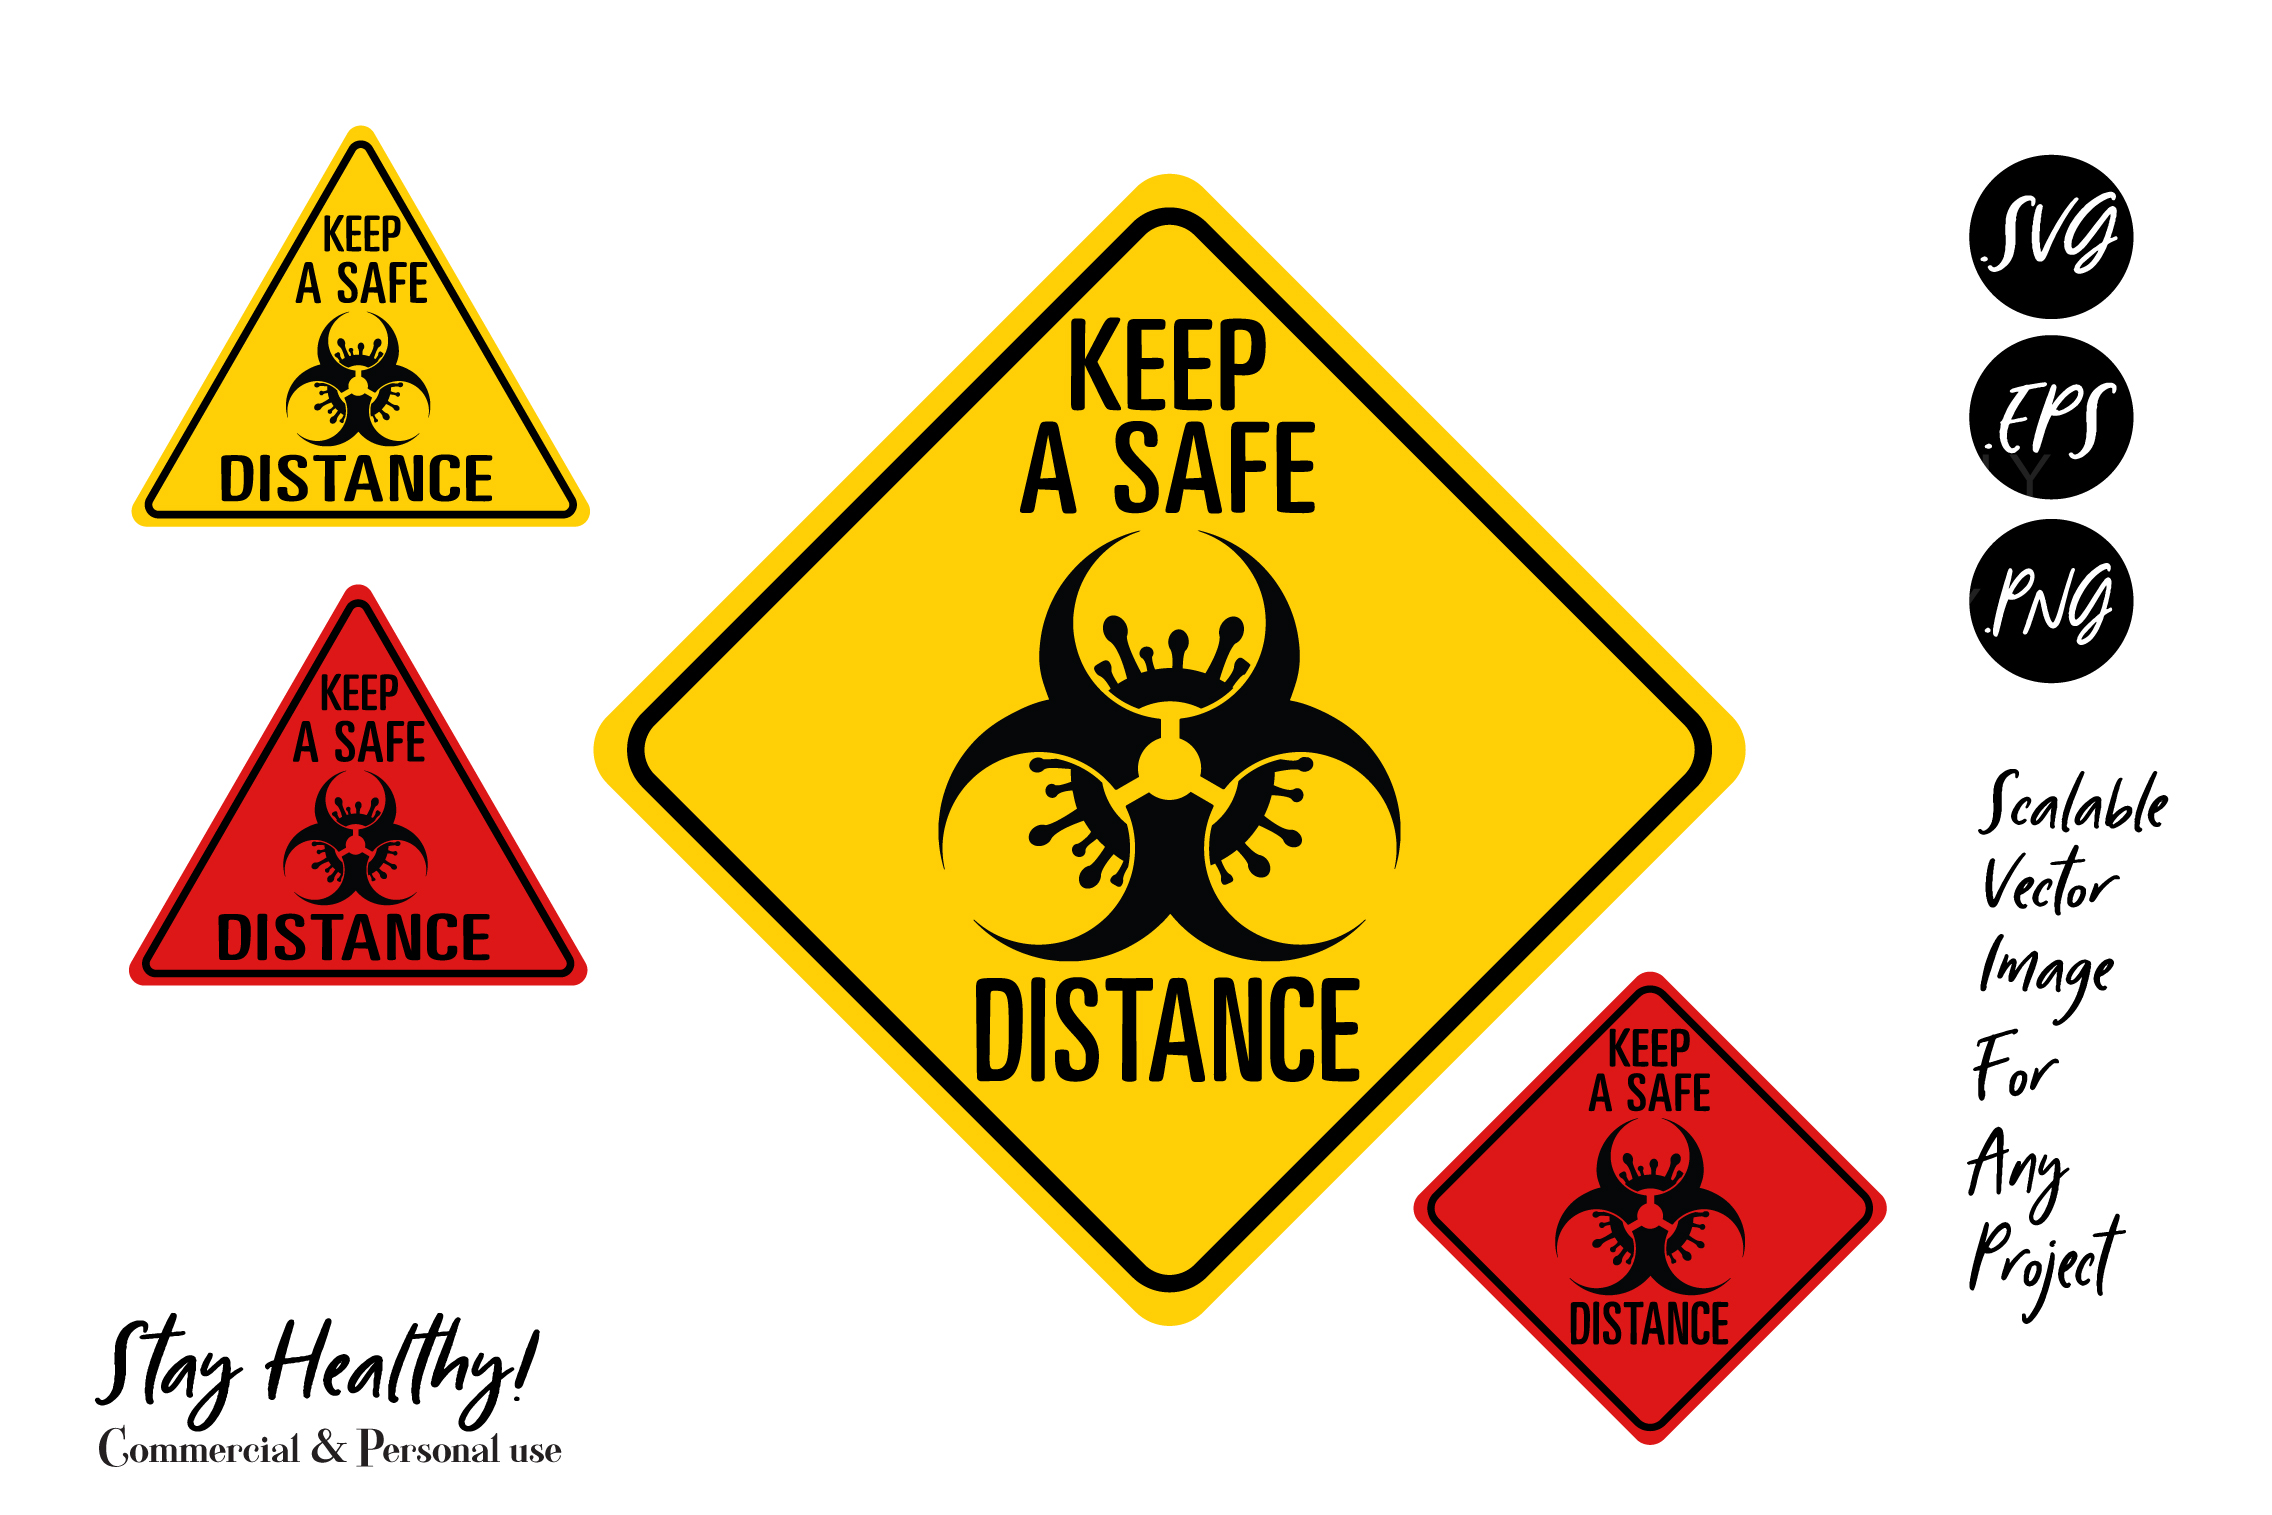 Download Free Save Distance Warning Virus Signs Hazard Graphic By Adlydigital for Cricut Explore, Silhouette and other cutting machines.